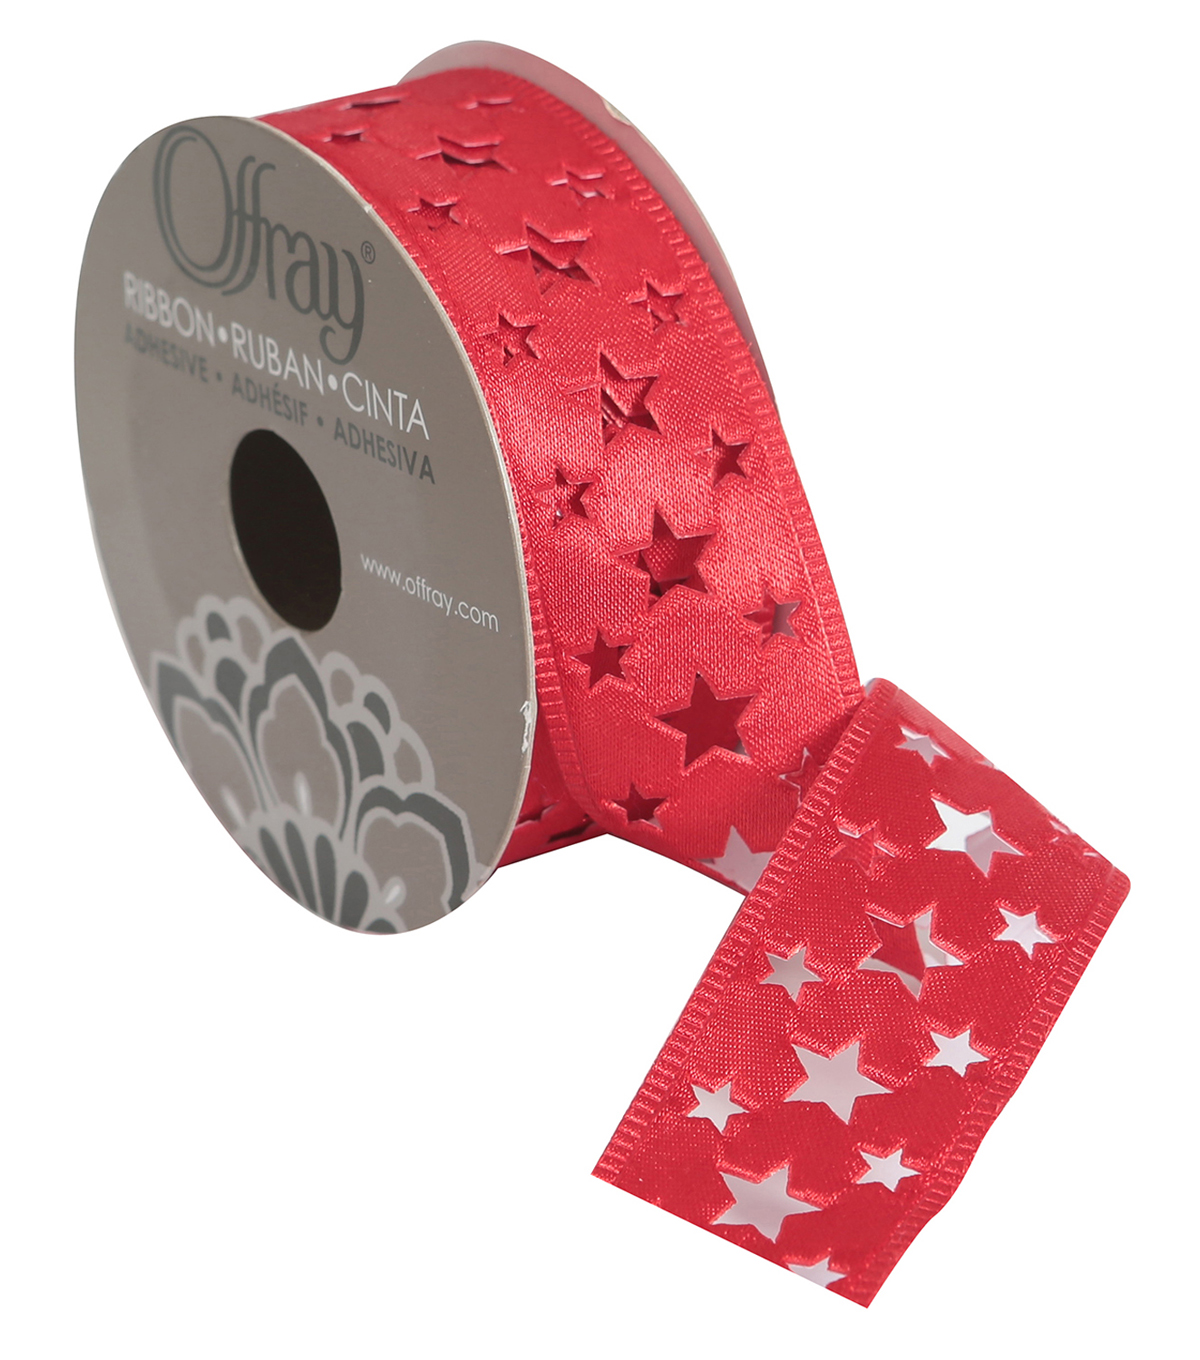 "Offray 1 1/8"" x 9' Die Cut Star Ribbon-Red"